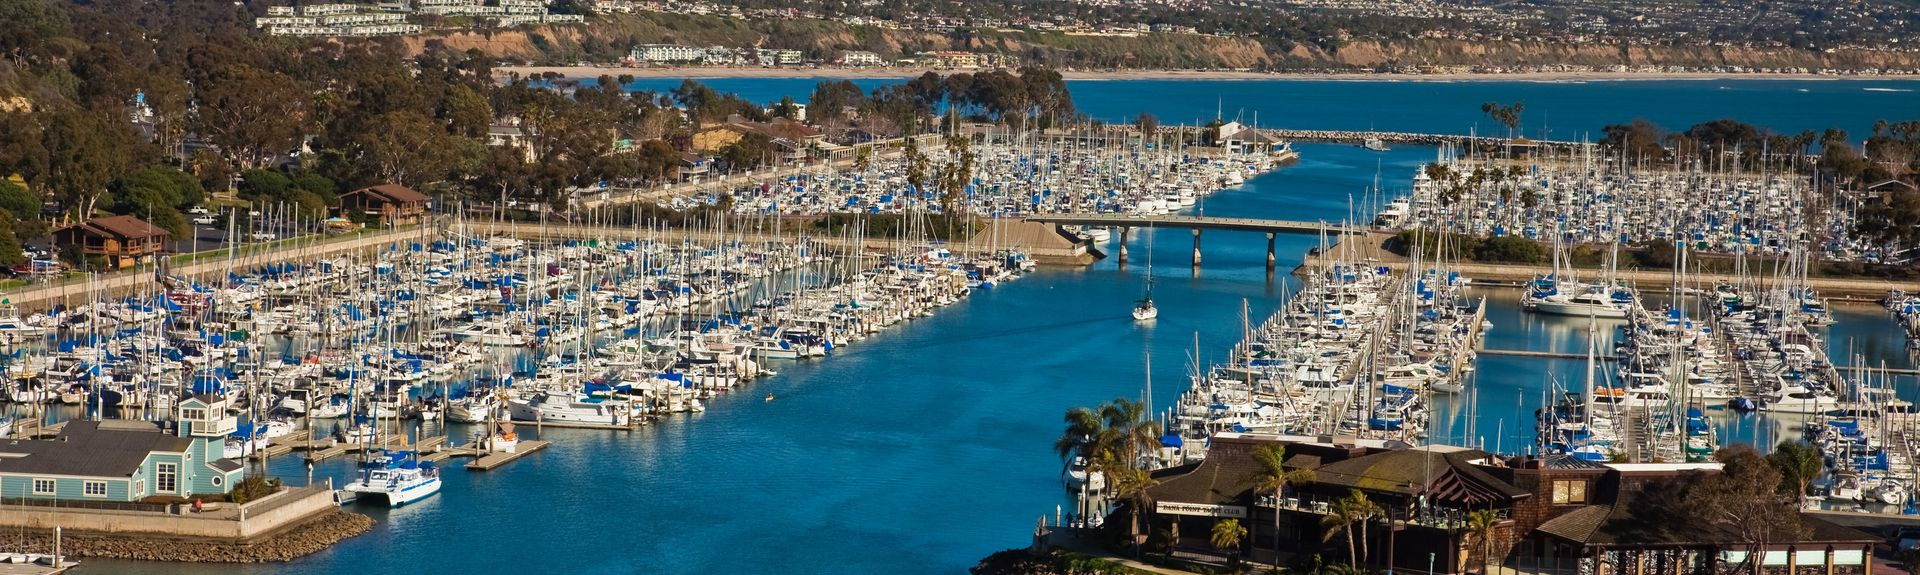 Dana Point, CA, USA